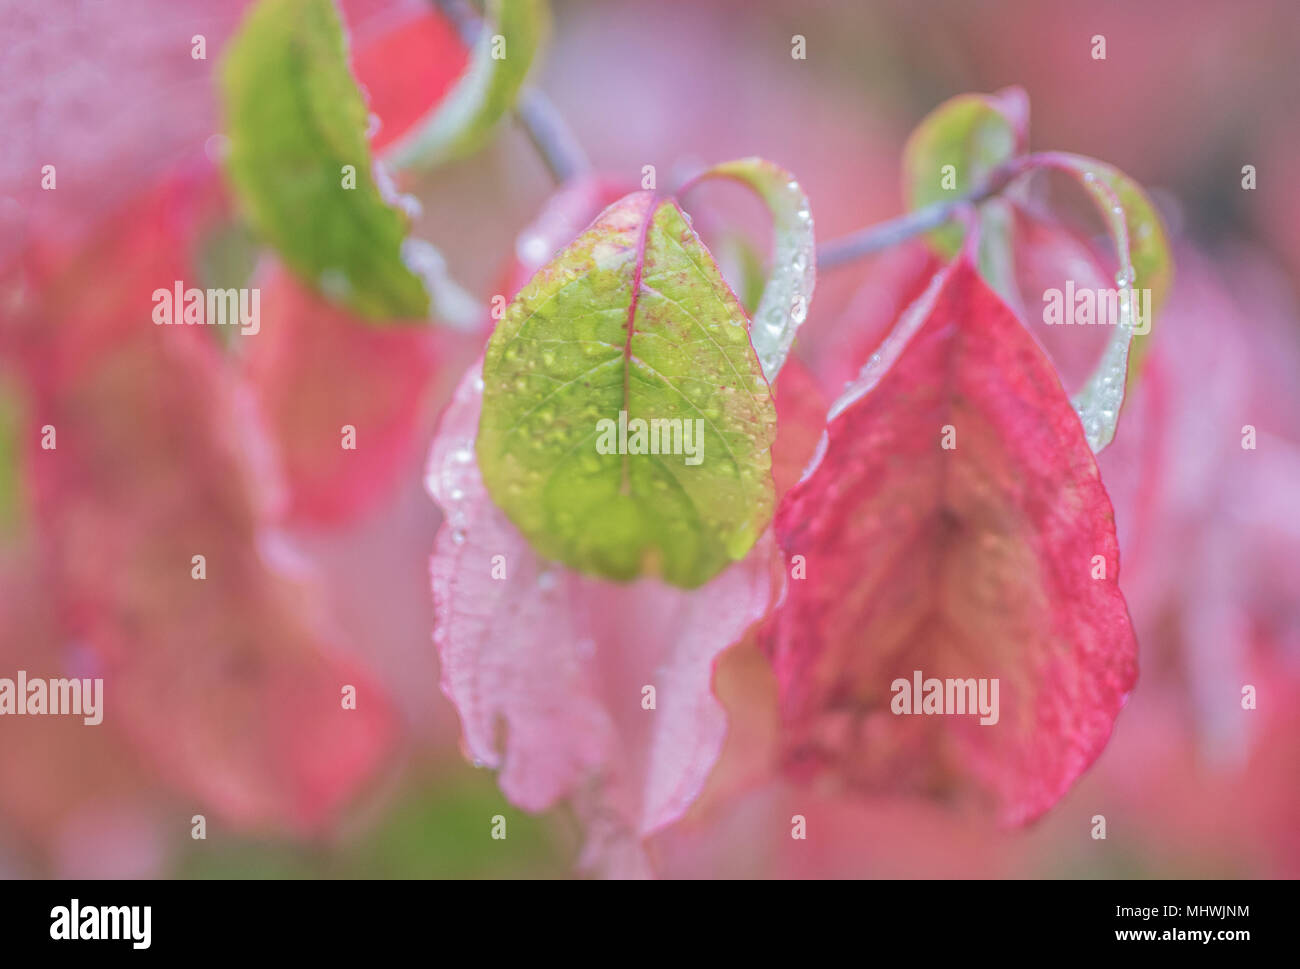 Wide aperture and soft focus on pink leaves - Stock Image